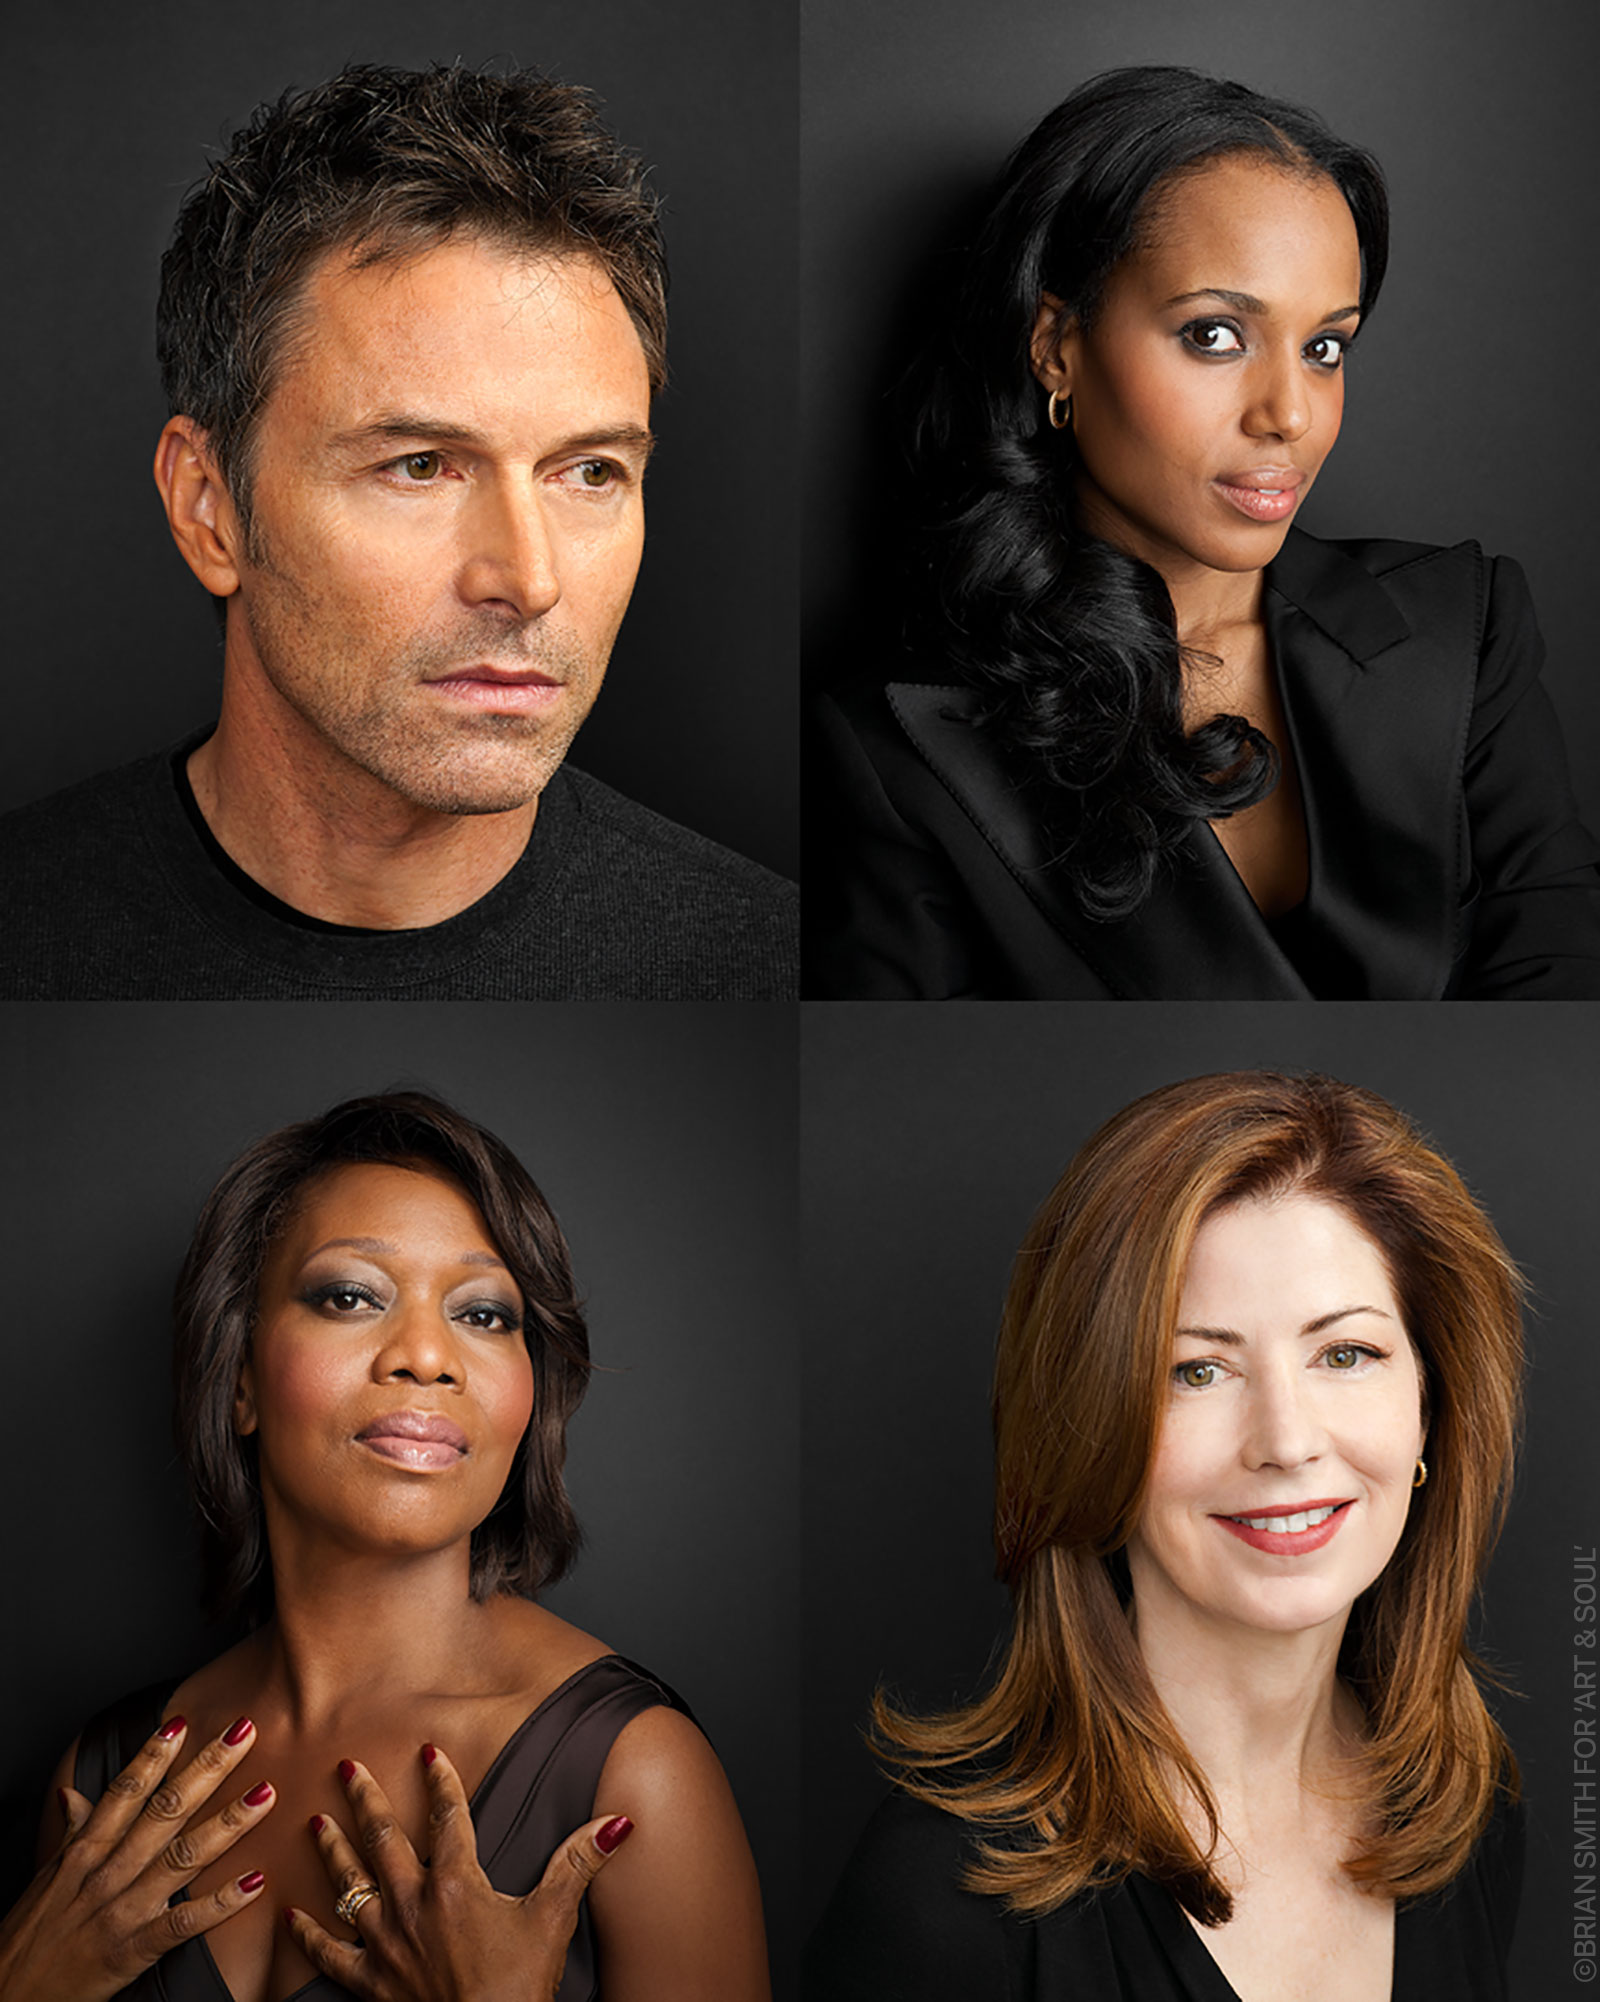 celebrity portraits of Tim Daly, Kerry Washington, Alfre Woodard and Dana Delaney photographed for Art & Soul